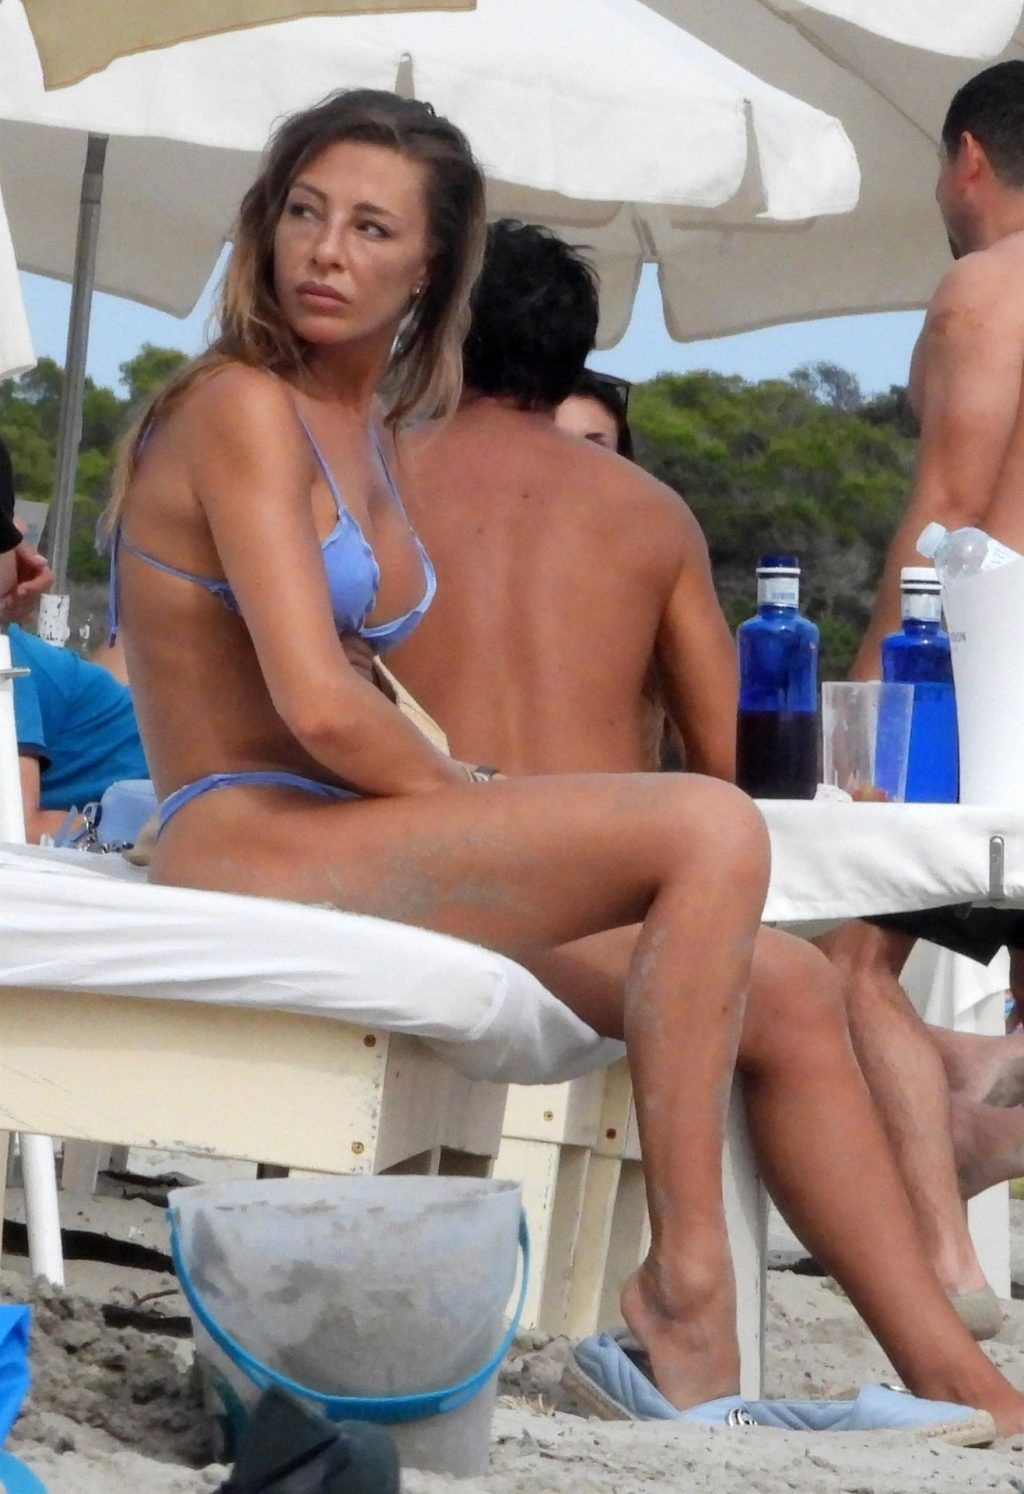 Alessia Tedeschi Enjoys a Day at the Beach with a Friend in Ibiza (18 Photos)